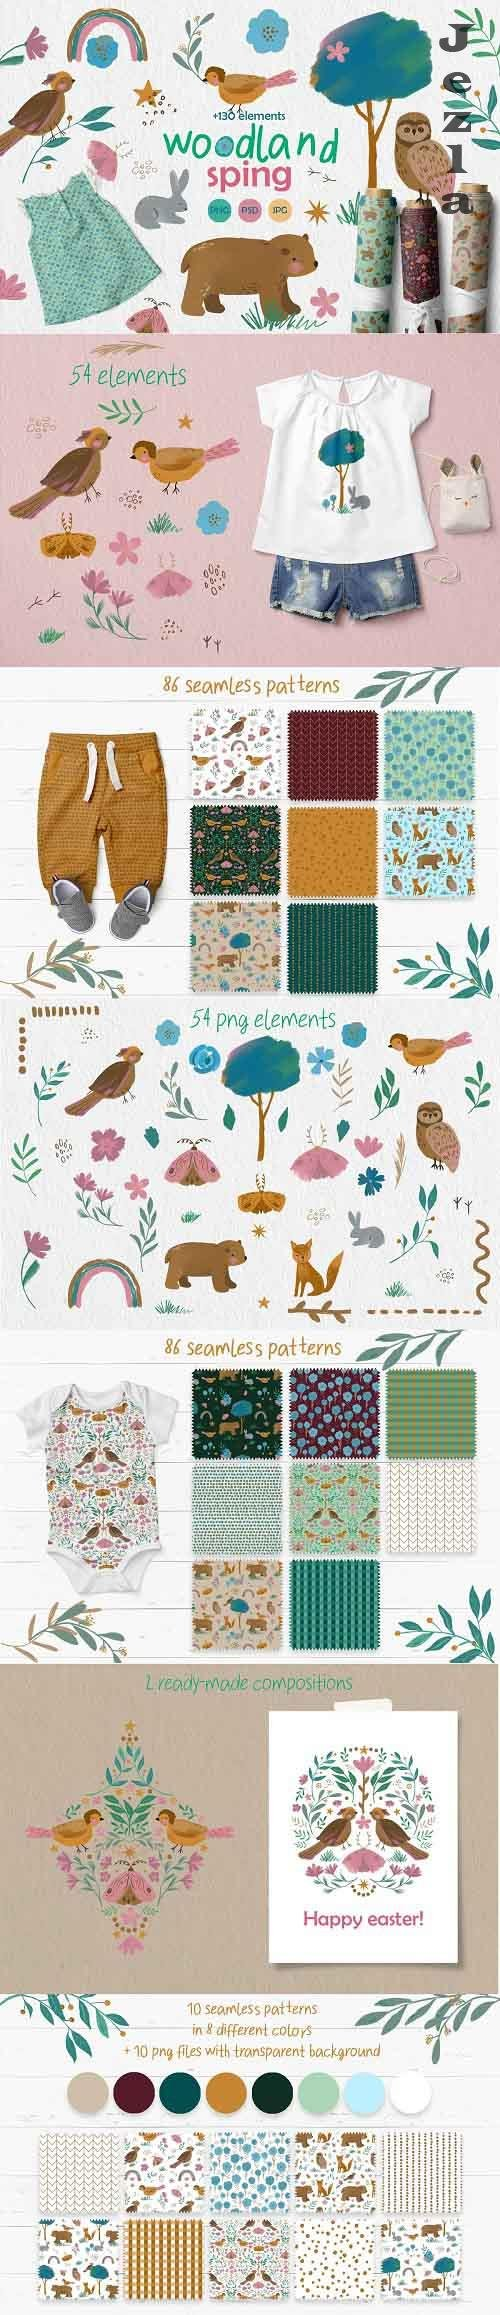 Woodland spring, clipart & patterns - 5830263